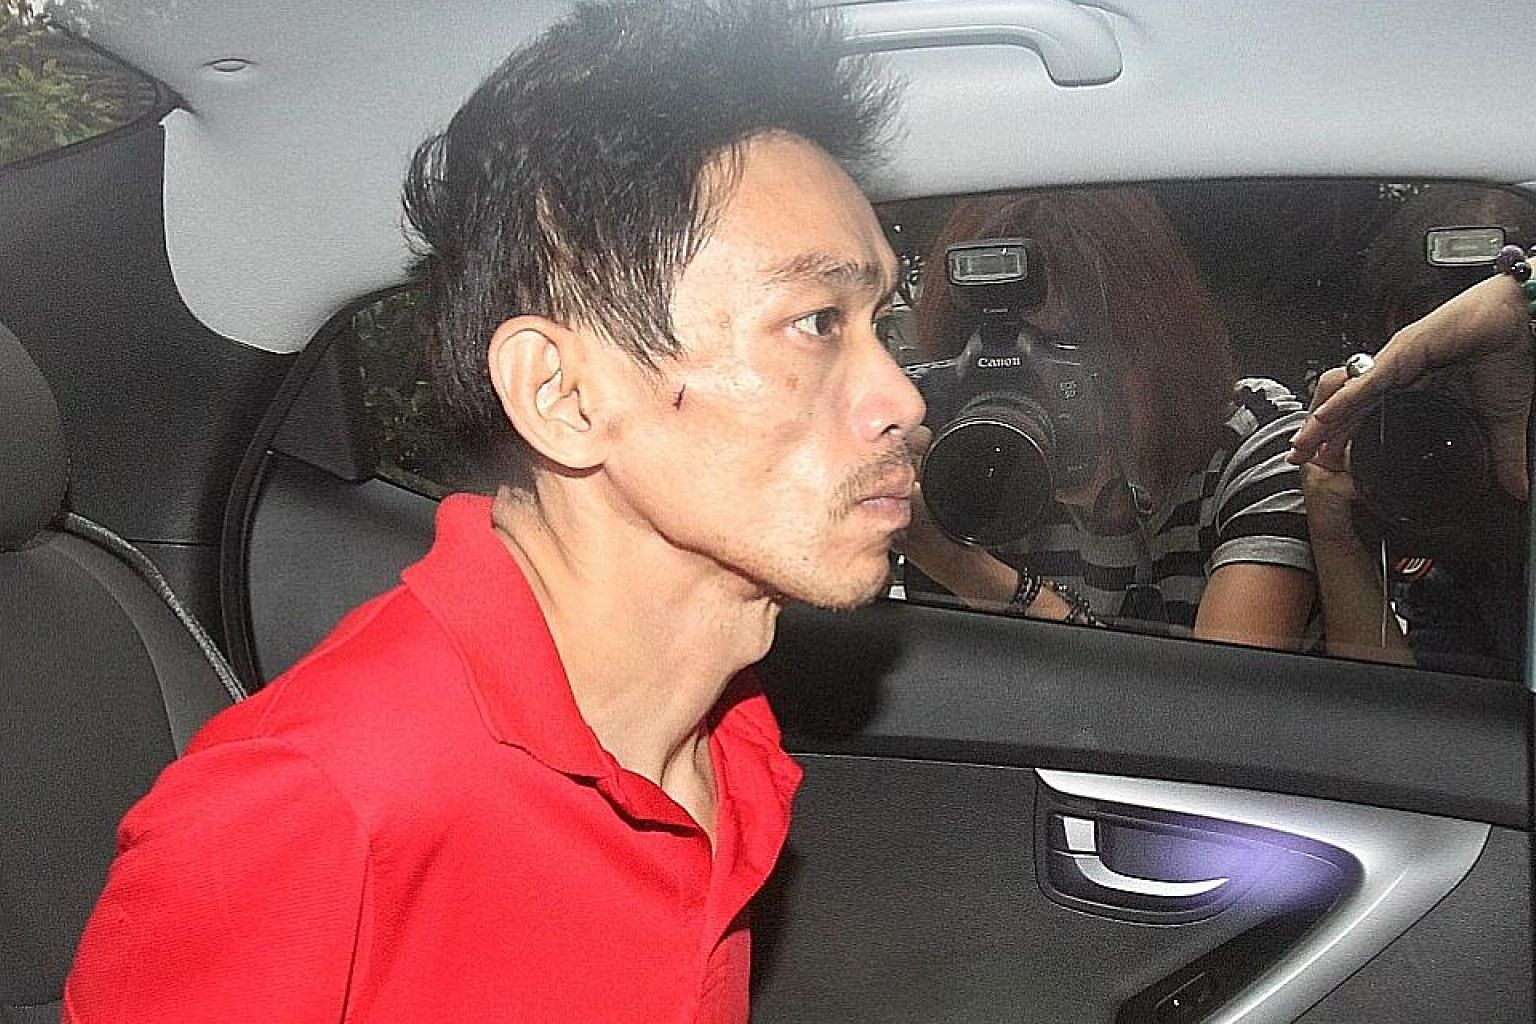 Tan Kok Meng, seen here in 2015, went on trial yesterday on a charge of murder for the death of his father on Nov 13 that year. When he was arrested, he told the police he had used his bare hands to attack his father, that they had a strained relatio